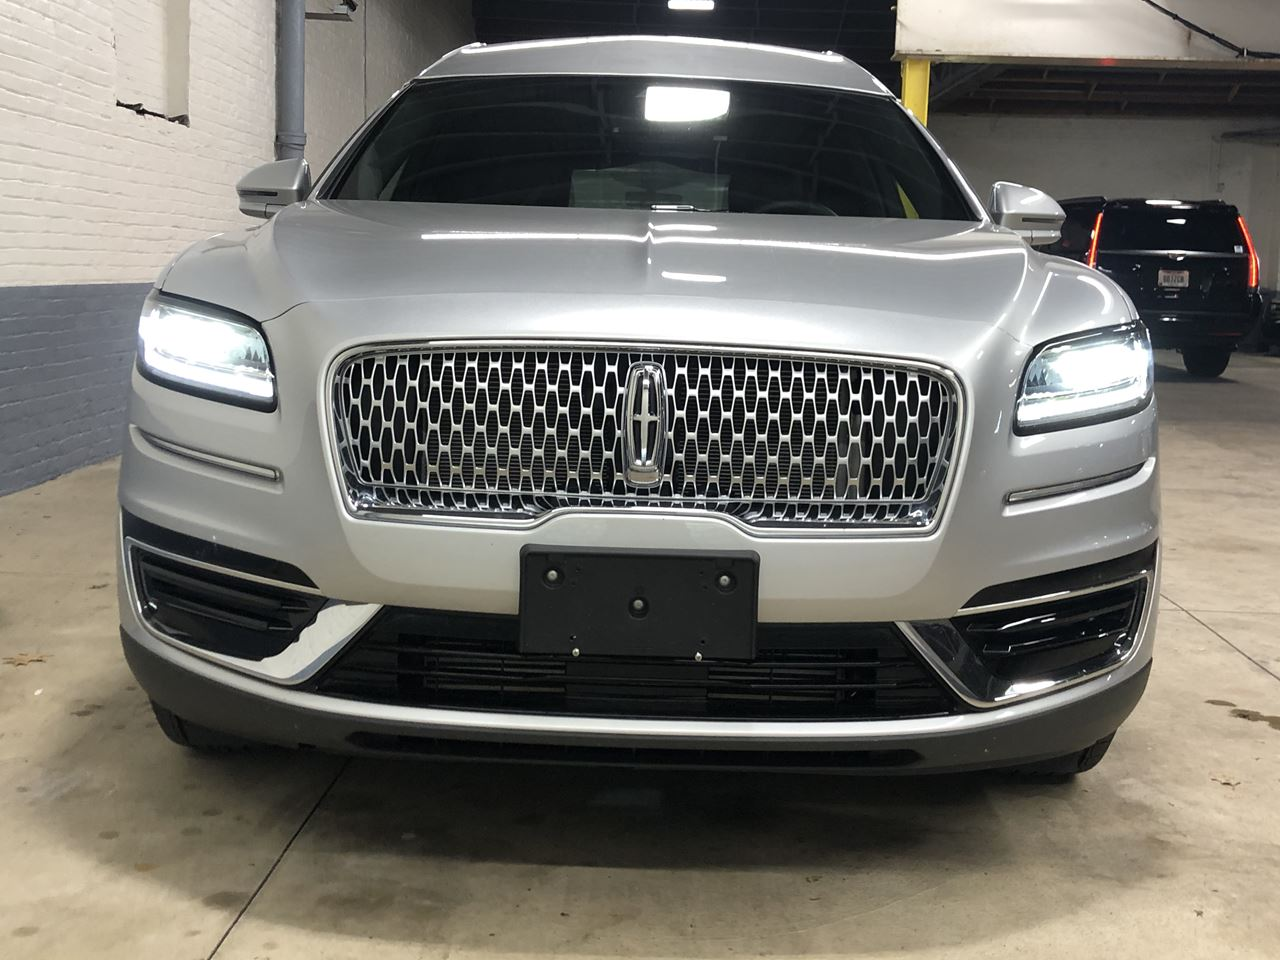 2019 Lincoln Nautilus MK Grand Legacy Limited 322 3